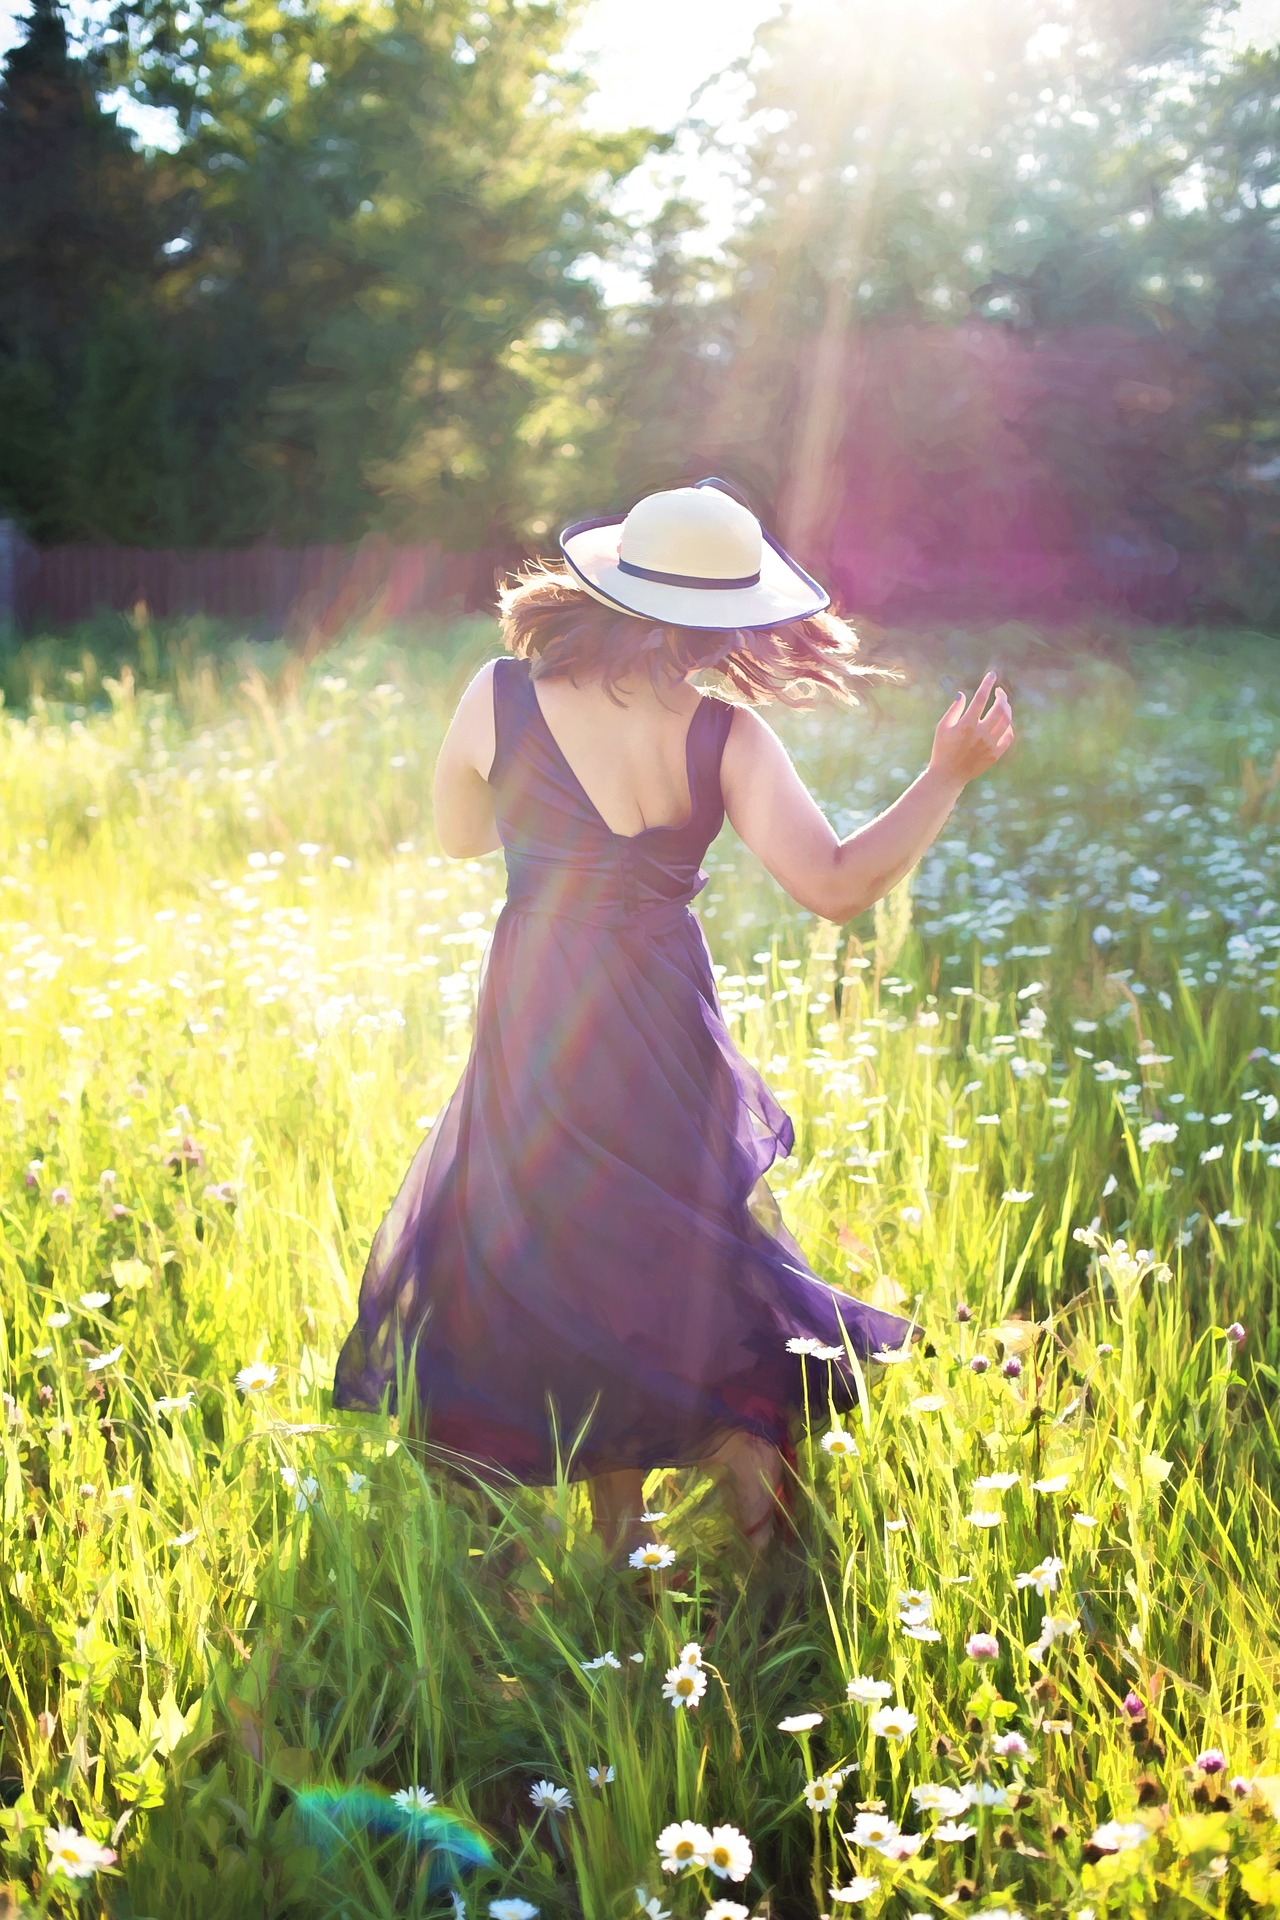 pretty-woman-dancing-in-field.jpg